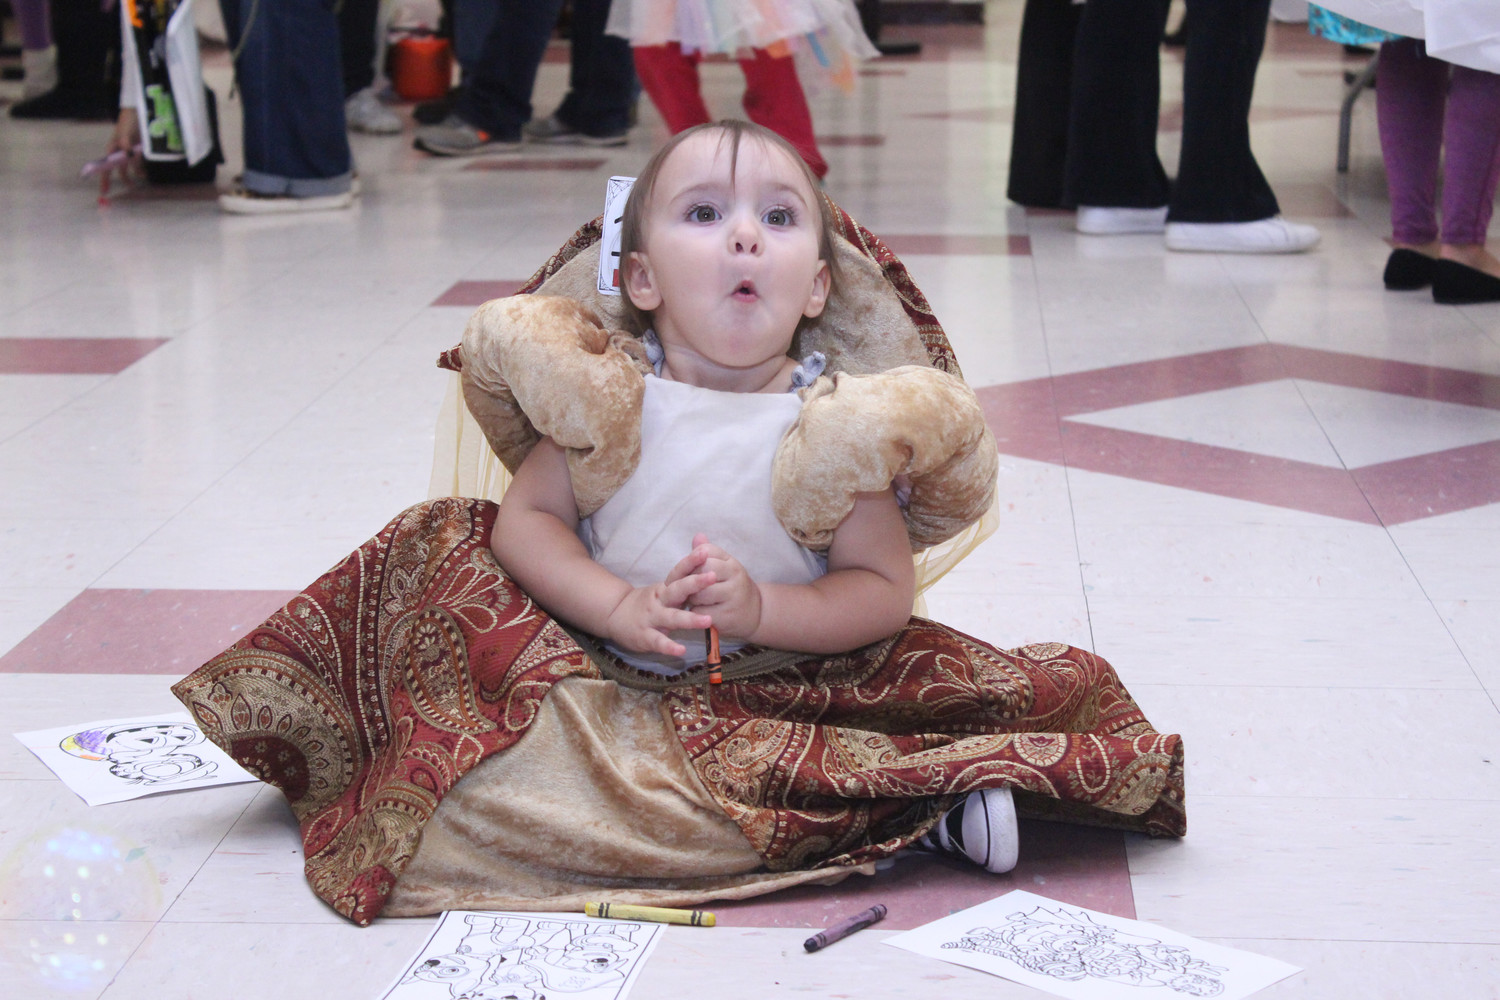 Imogene Caron, 17 months old, dressed as Queen Elizabeth I at the Halloween gathering.